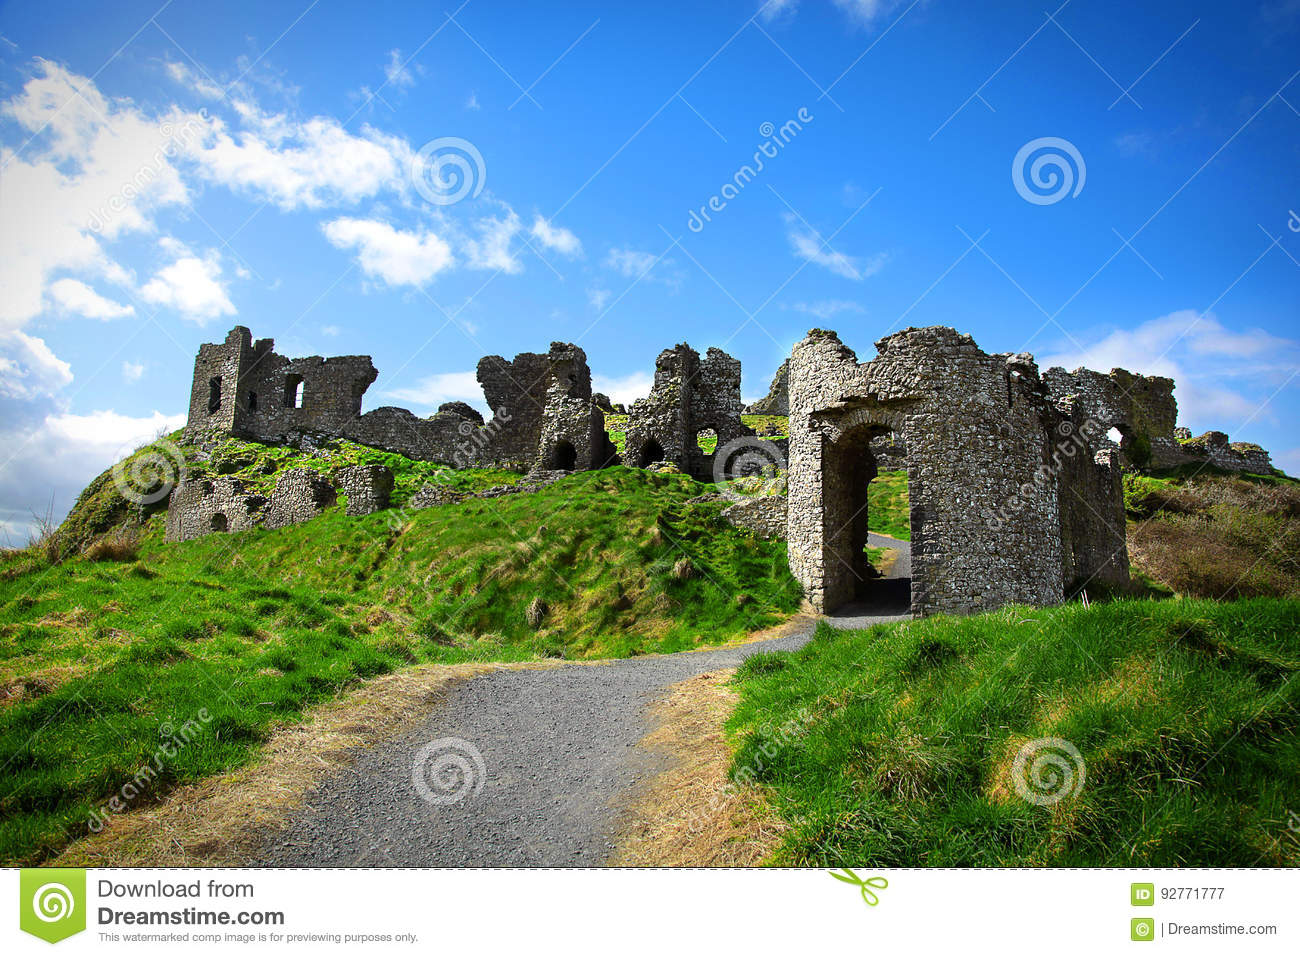 Castle ruins of the Rock of Dunamase in Ireland